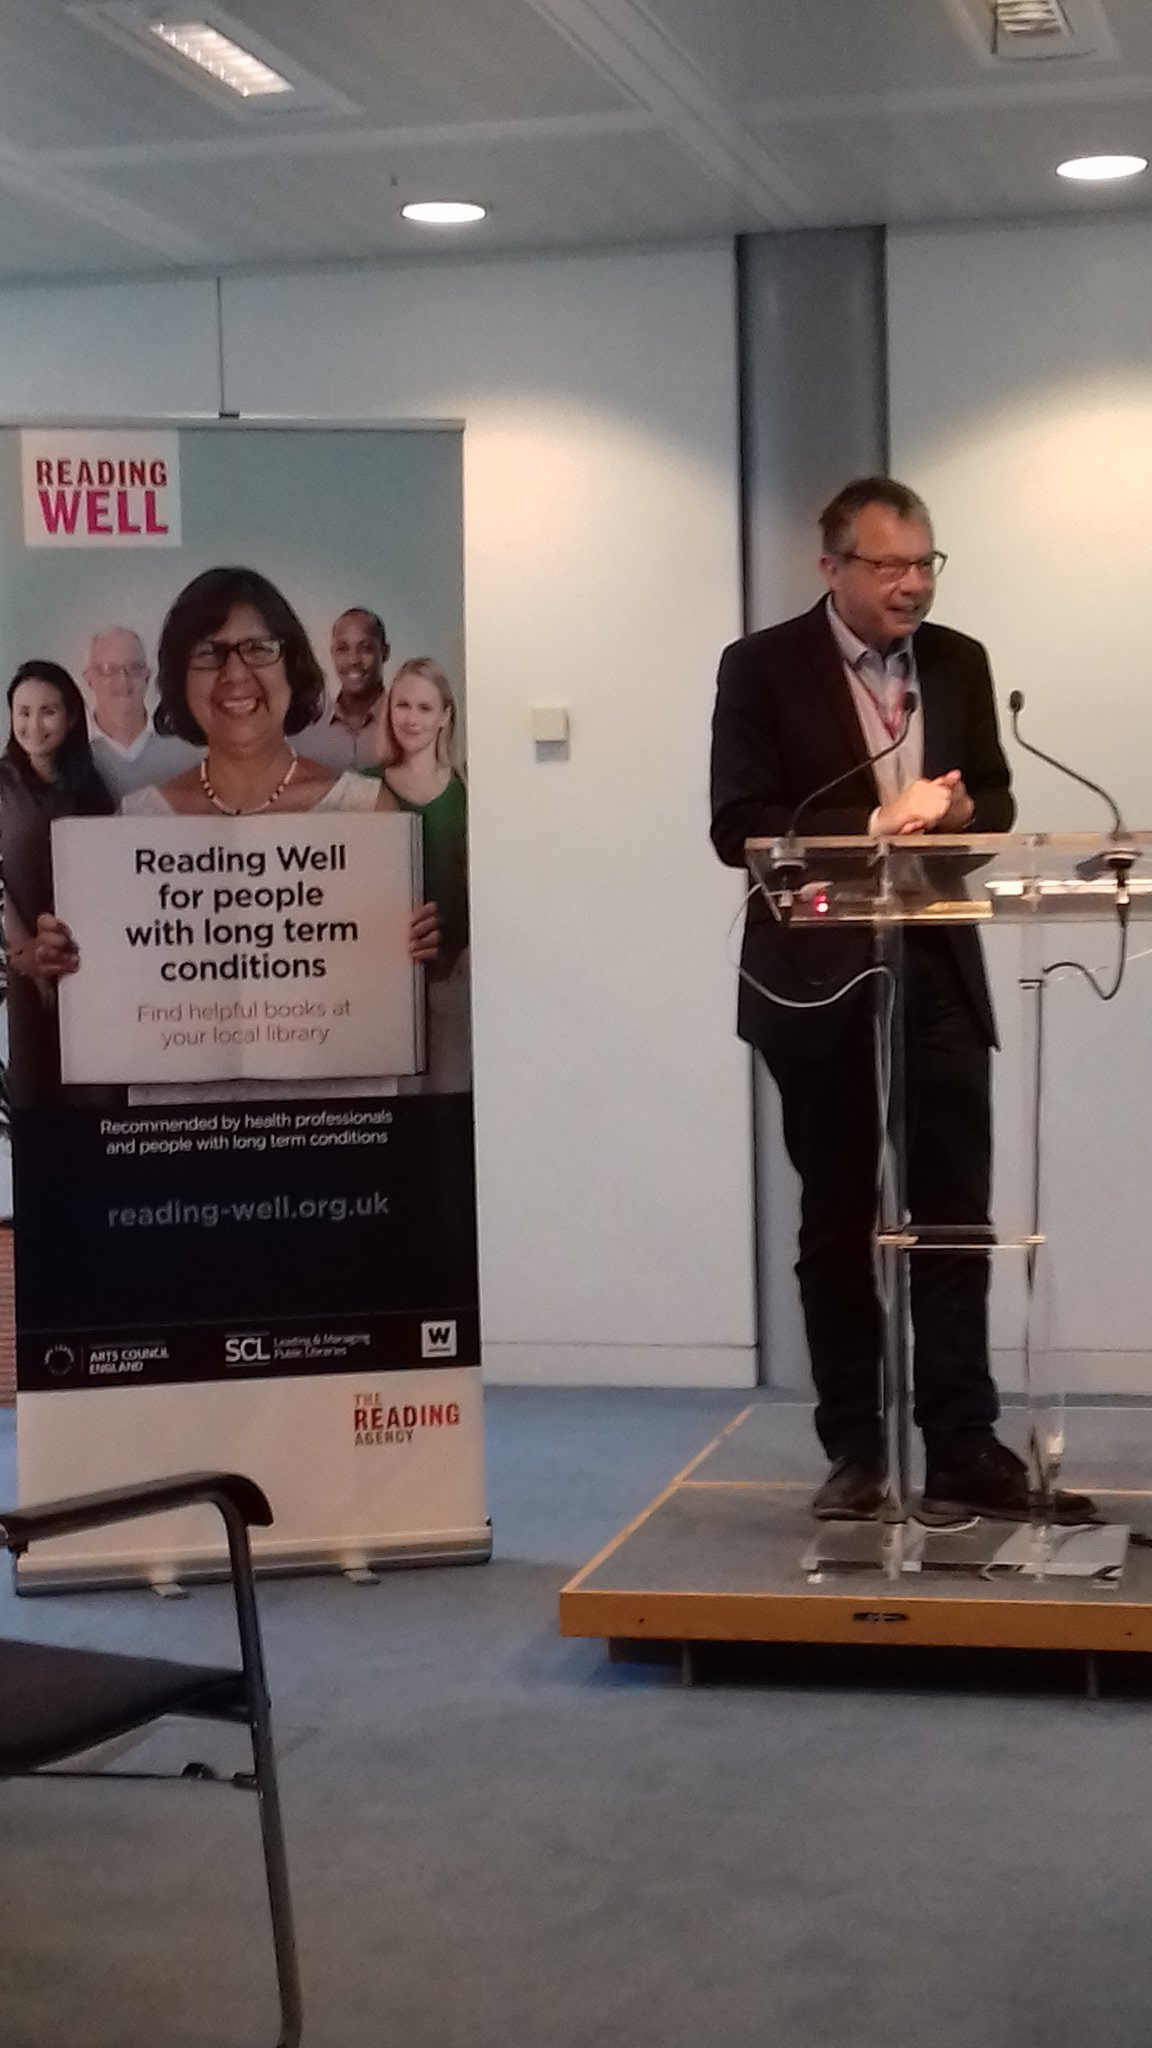 Simon Chaplain from @wellcometrust welcomes 100's of delegates to the launch of #Readingwell @readingagency  new long term conditions list https://t.co/mMMMPYs7Ax